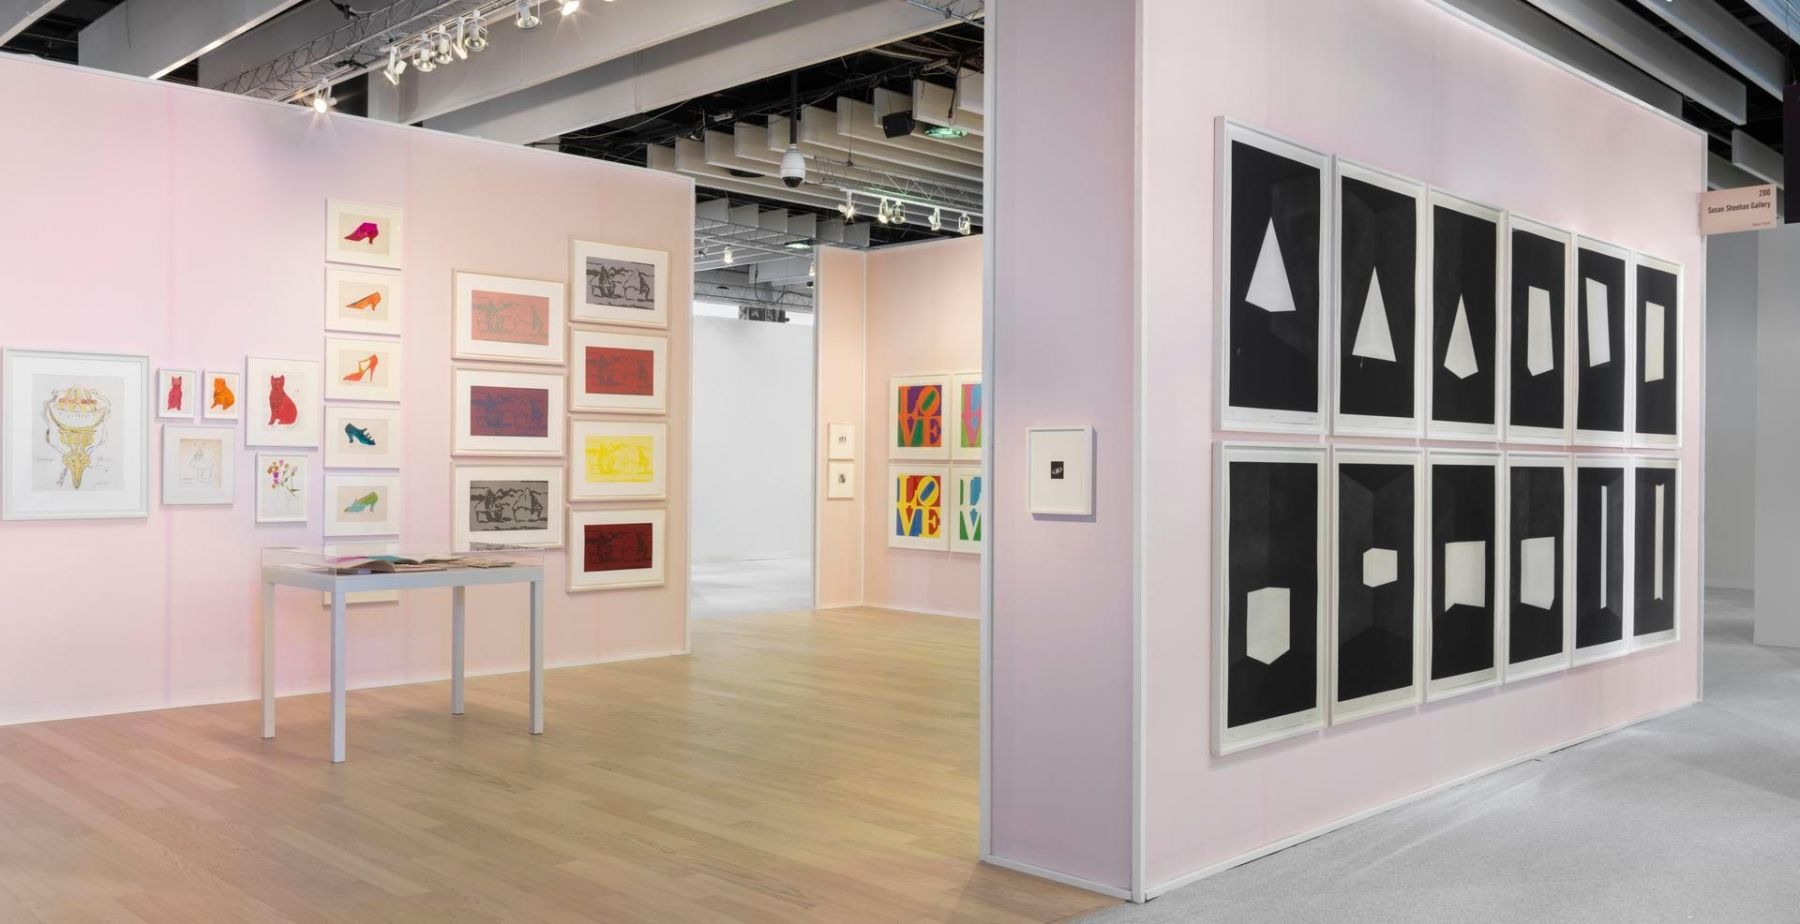 The Armory Show 2018 at Susan Sheehan Gallery